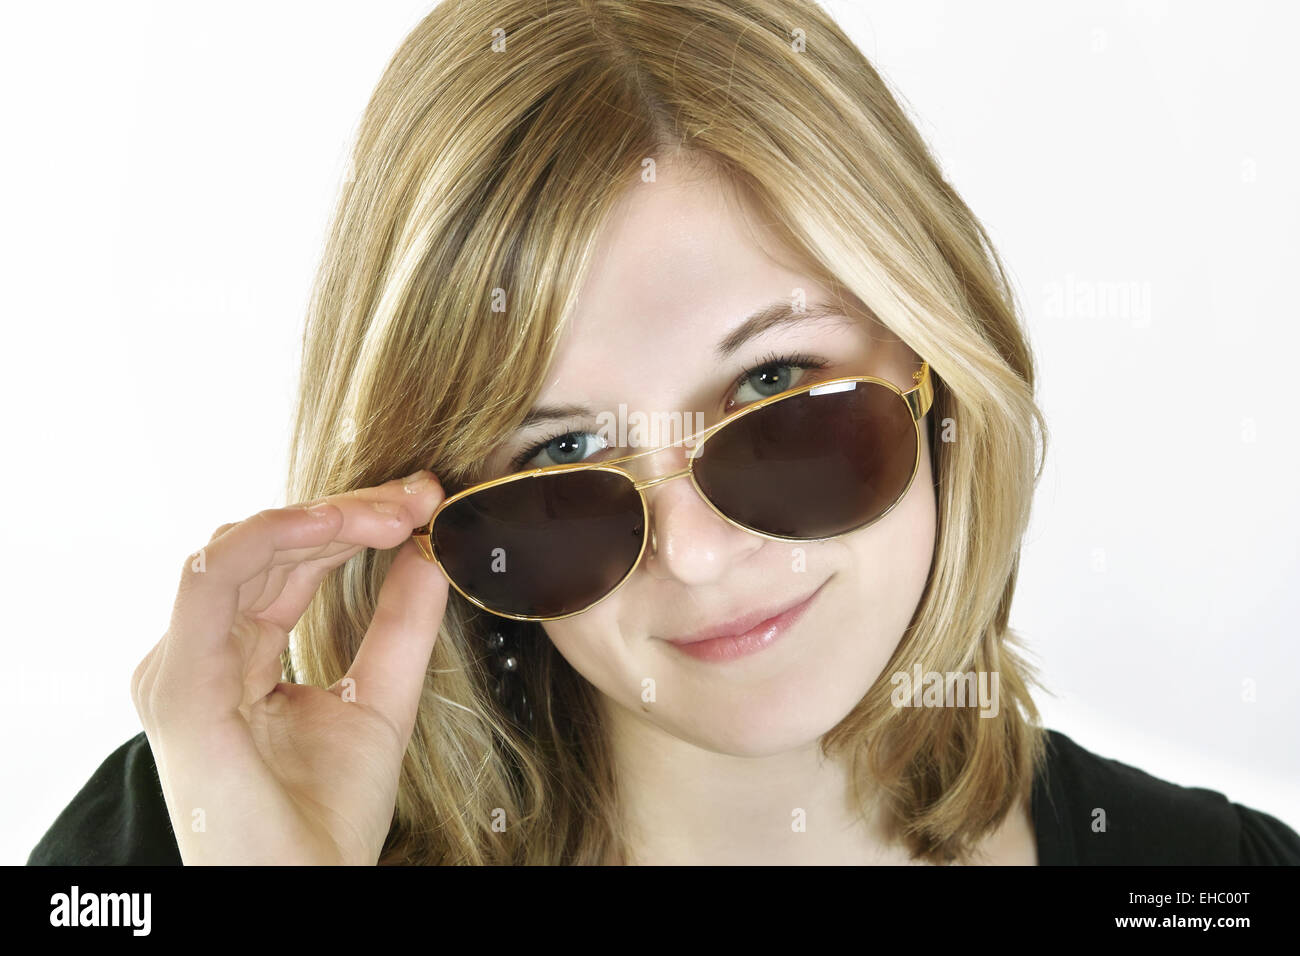 Pert look about the sunglasses - Stock Image